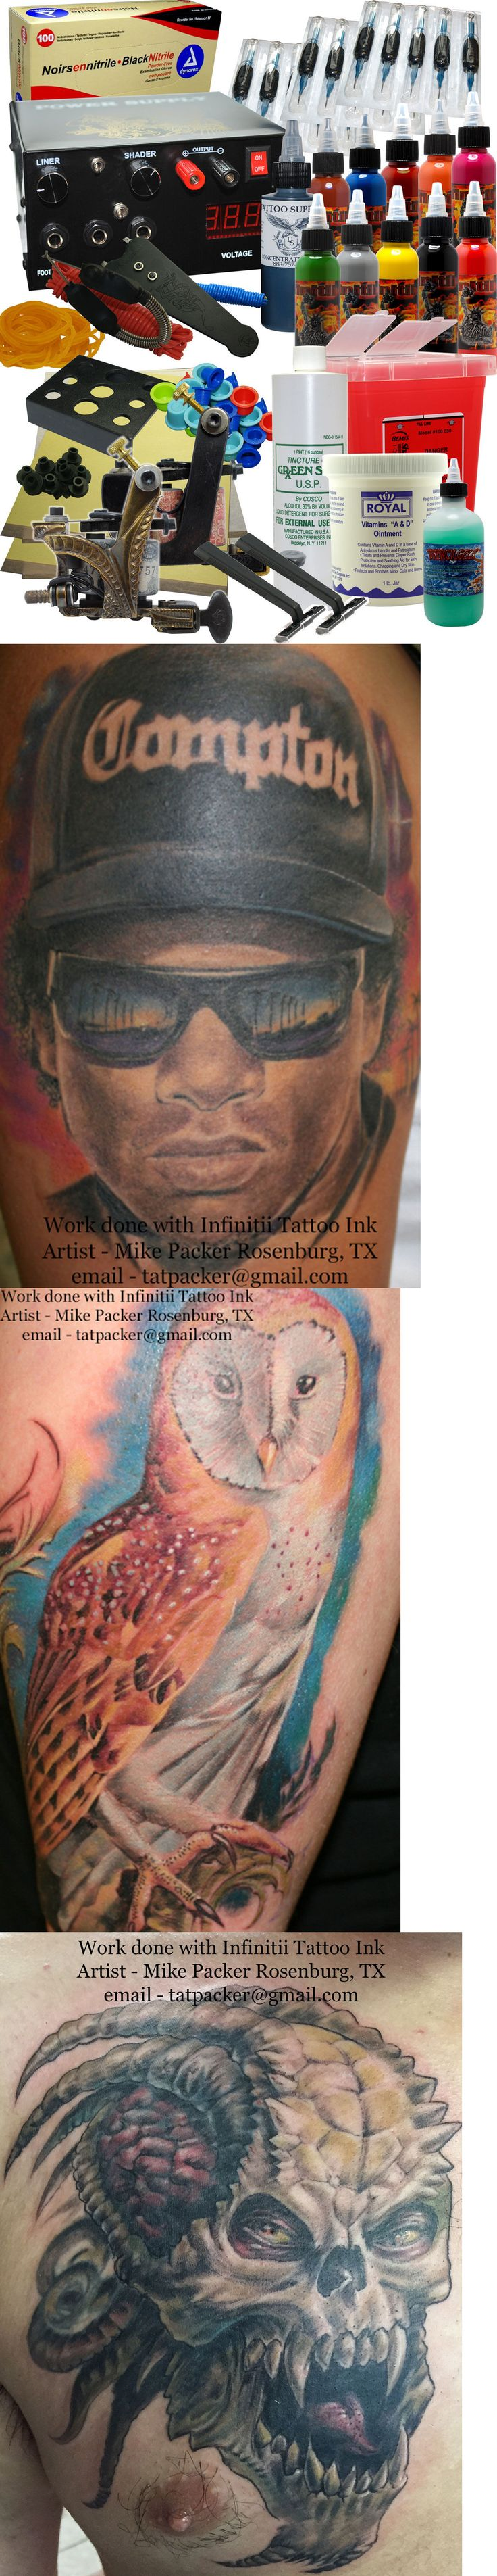 Tattoo Complete Kits: Professional Tattoo Kit BUY IT NOW ONLY: $300.0